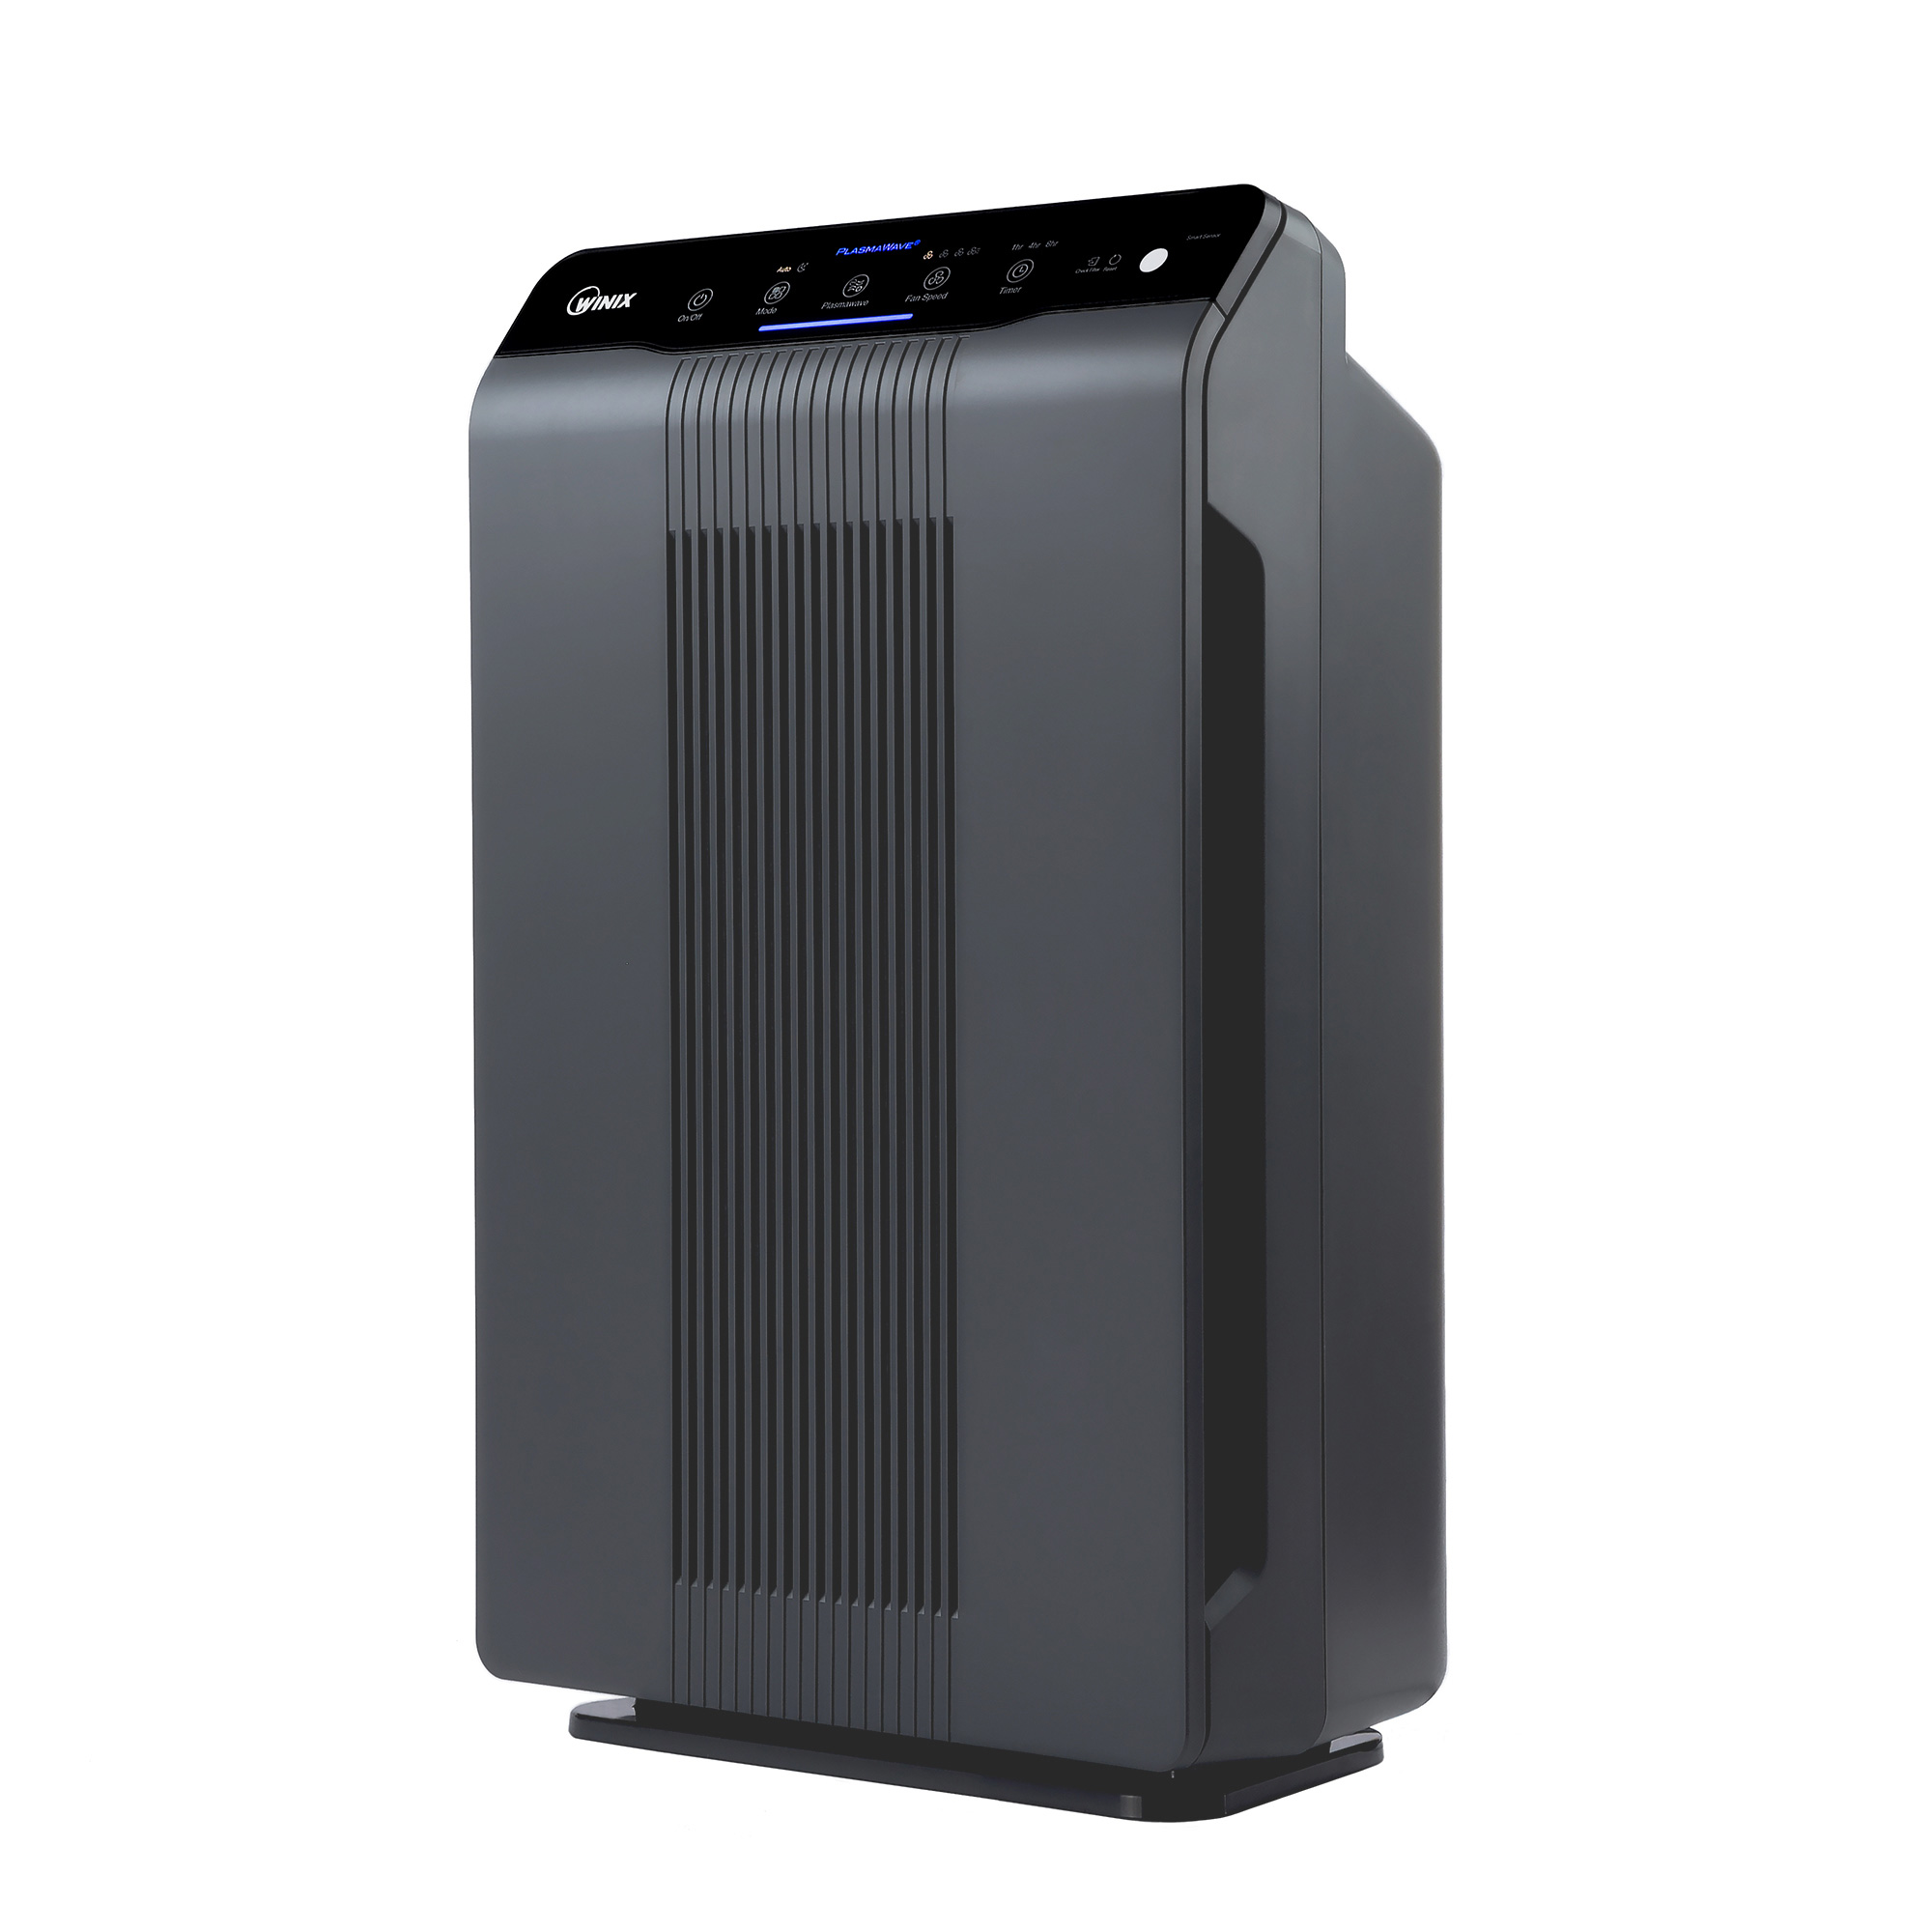 Winix 5500 2 air purifier with plasmawave technology for Best air purifier 2016